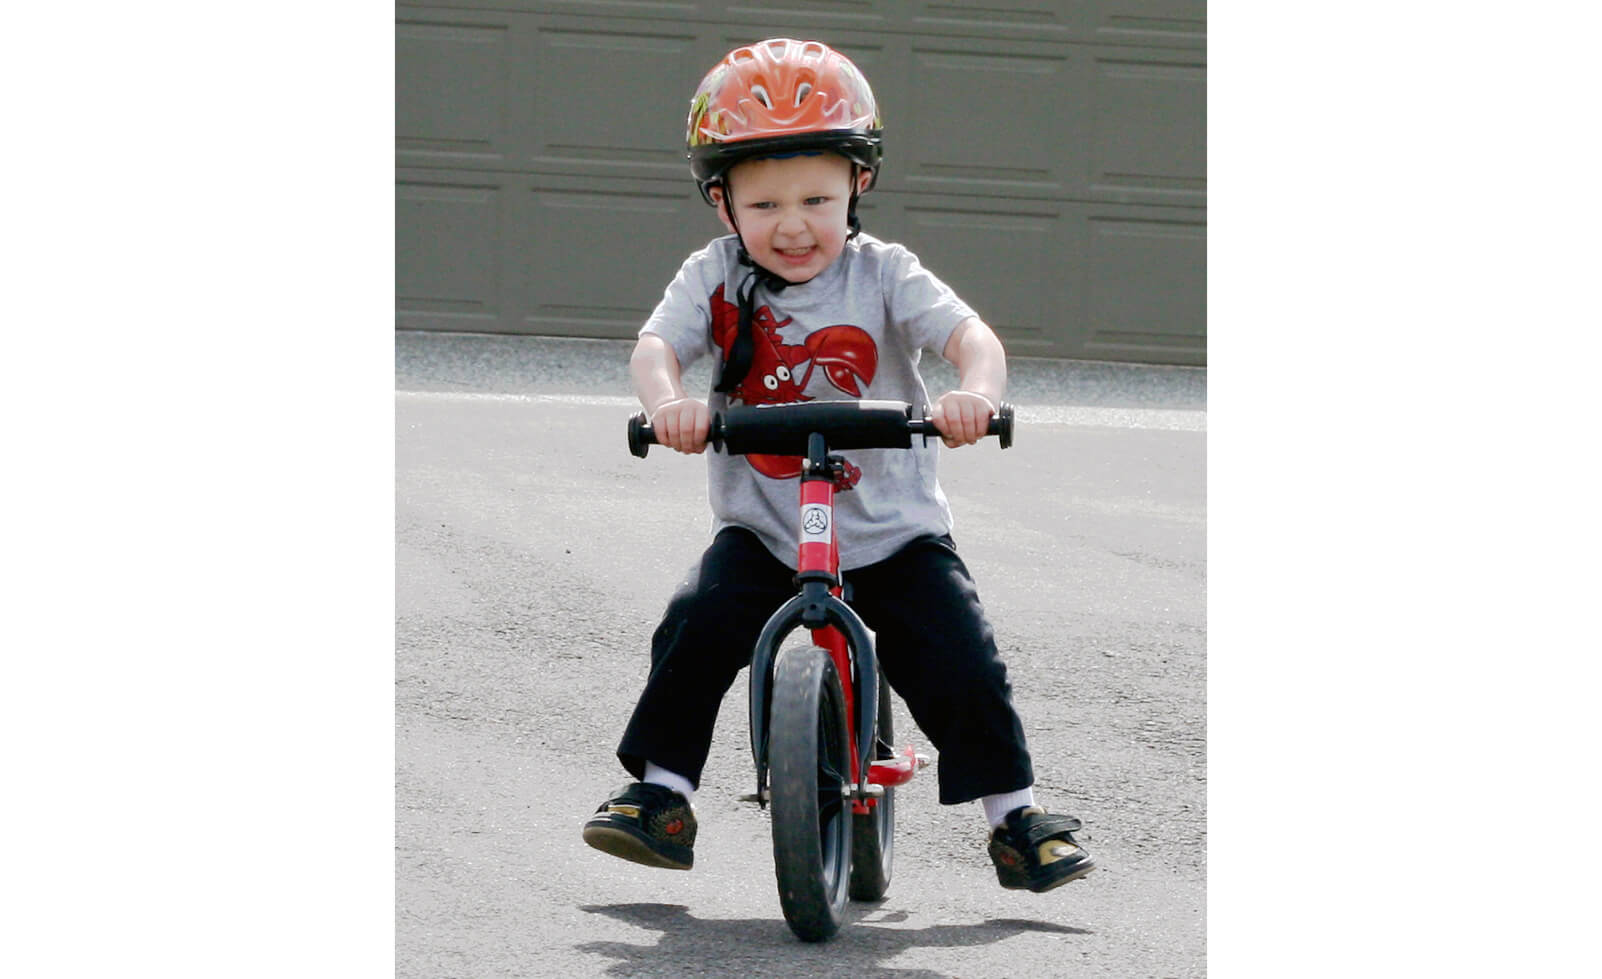 d62e164ab83 Strider 12 Sport Balance Bike | Kids Bike | Free Shipping Over $50